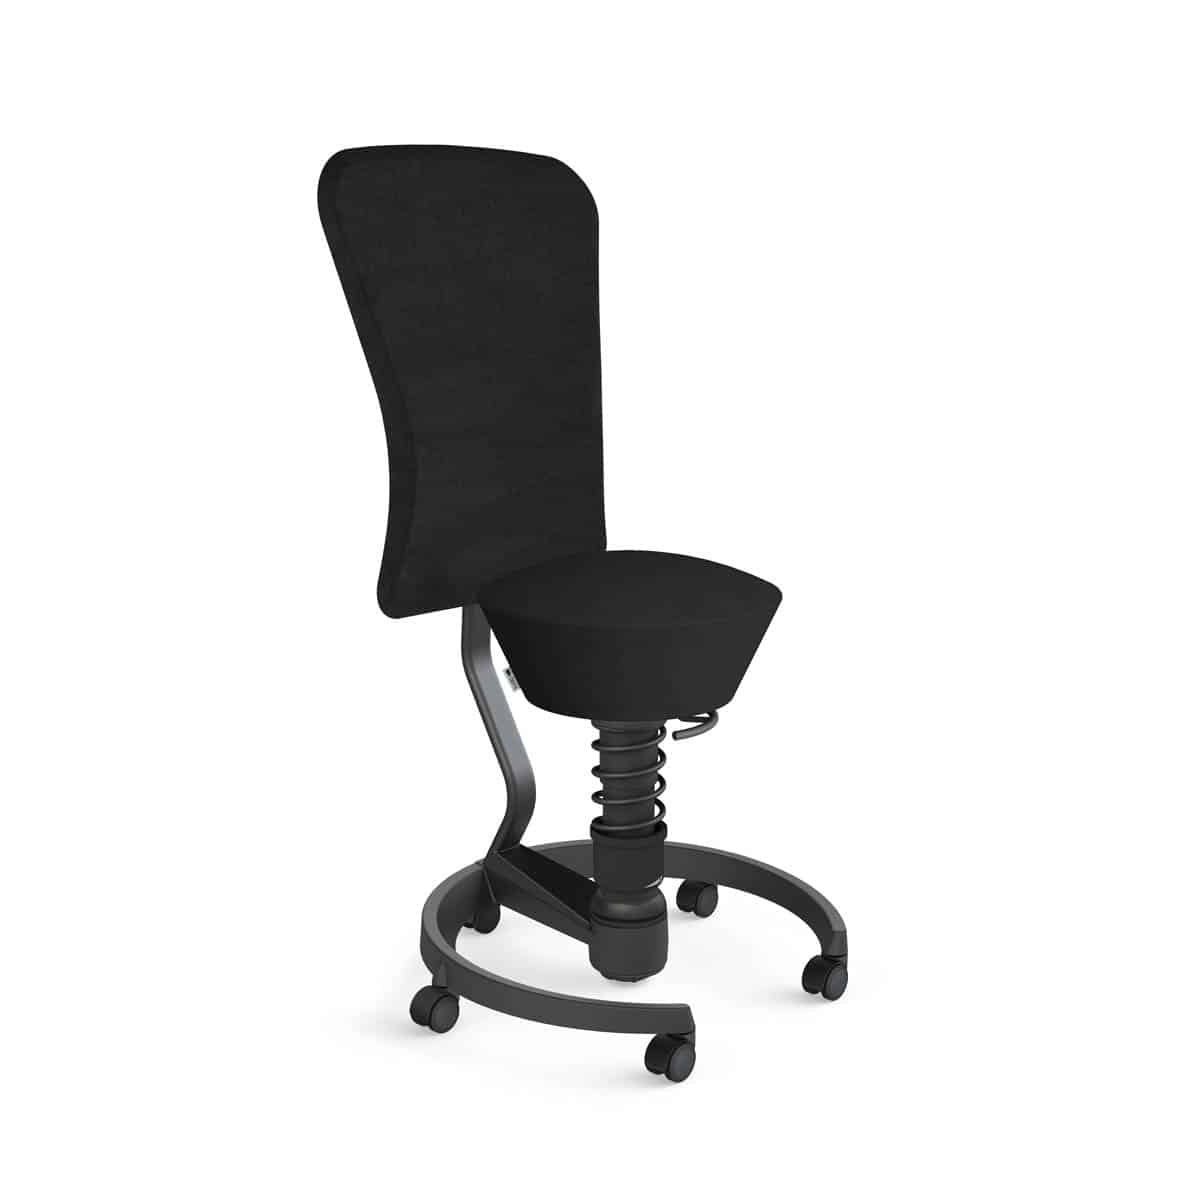 103-HB-LIBK-BK-CM01_Aeris-Swopper-Backrest_castors-hard-floor_light_black_black_microfibre_black_01